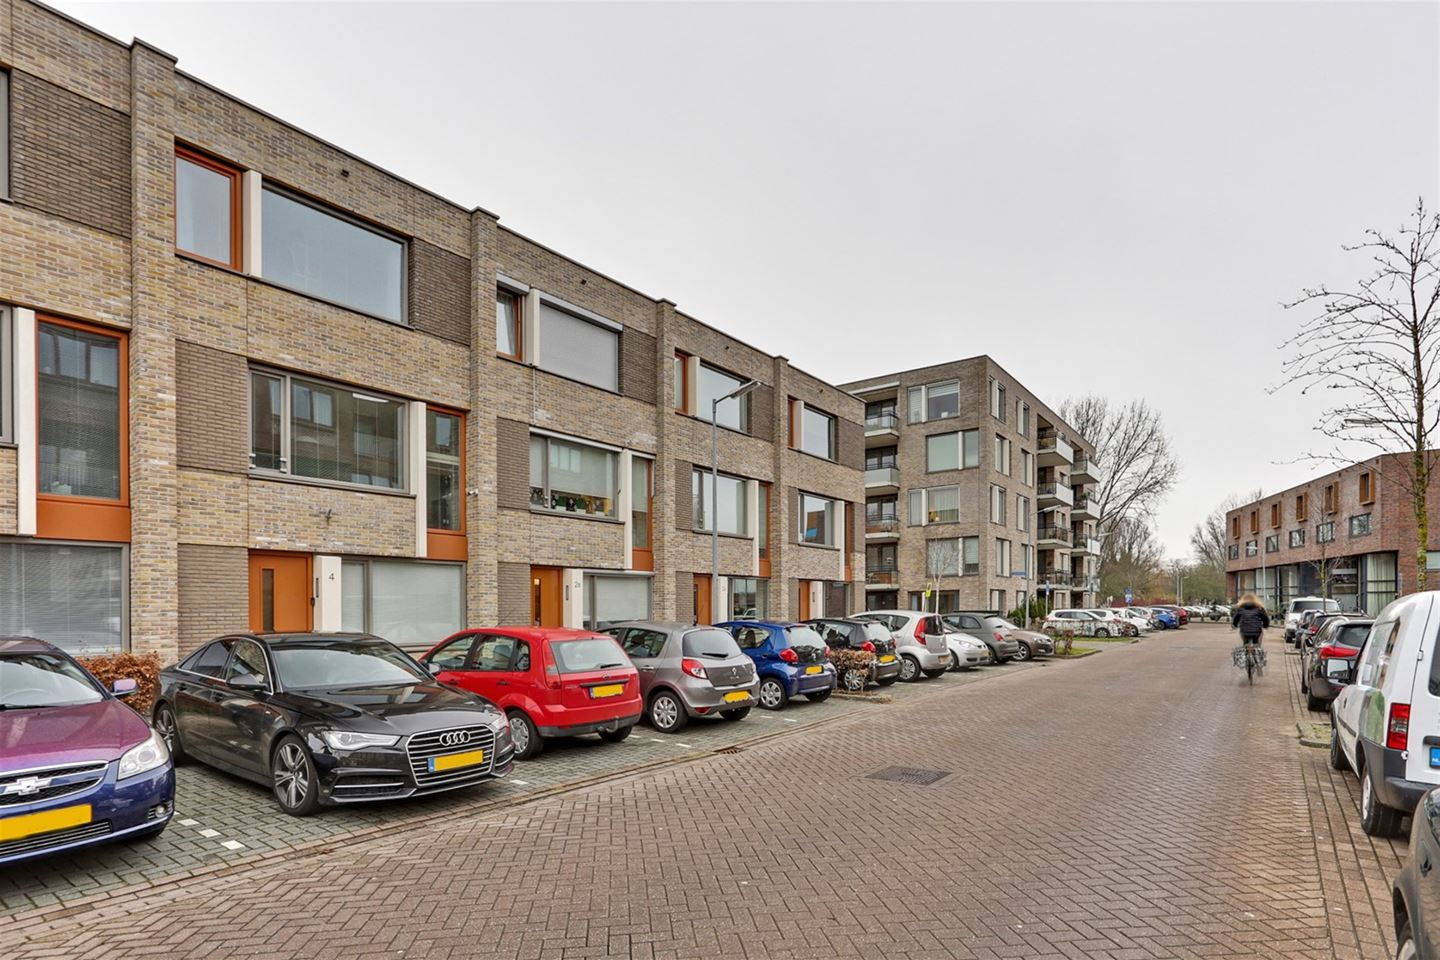 View photo 1 of Jan de Heemstraat 4